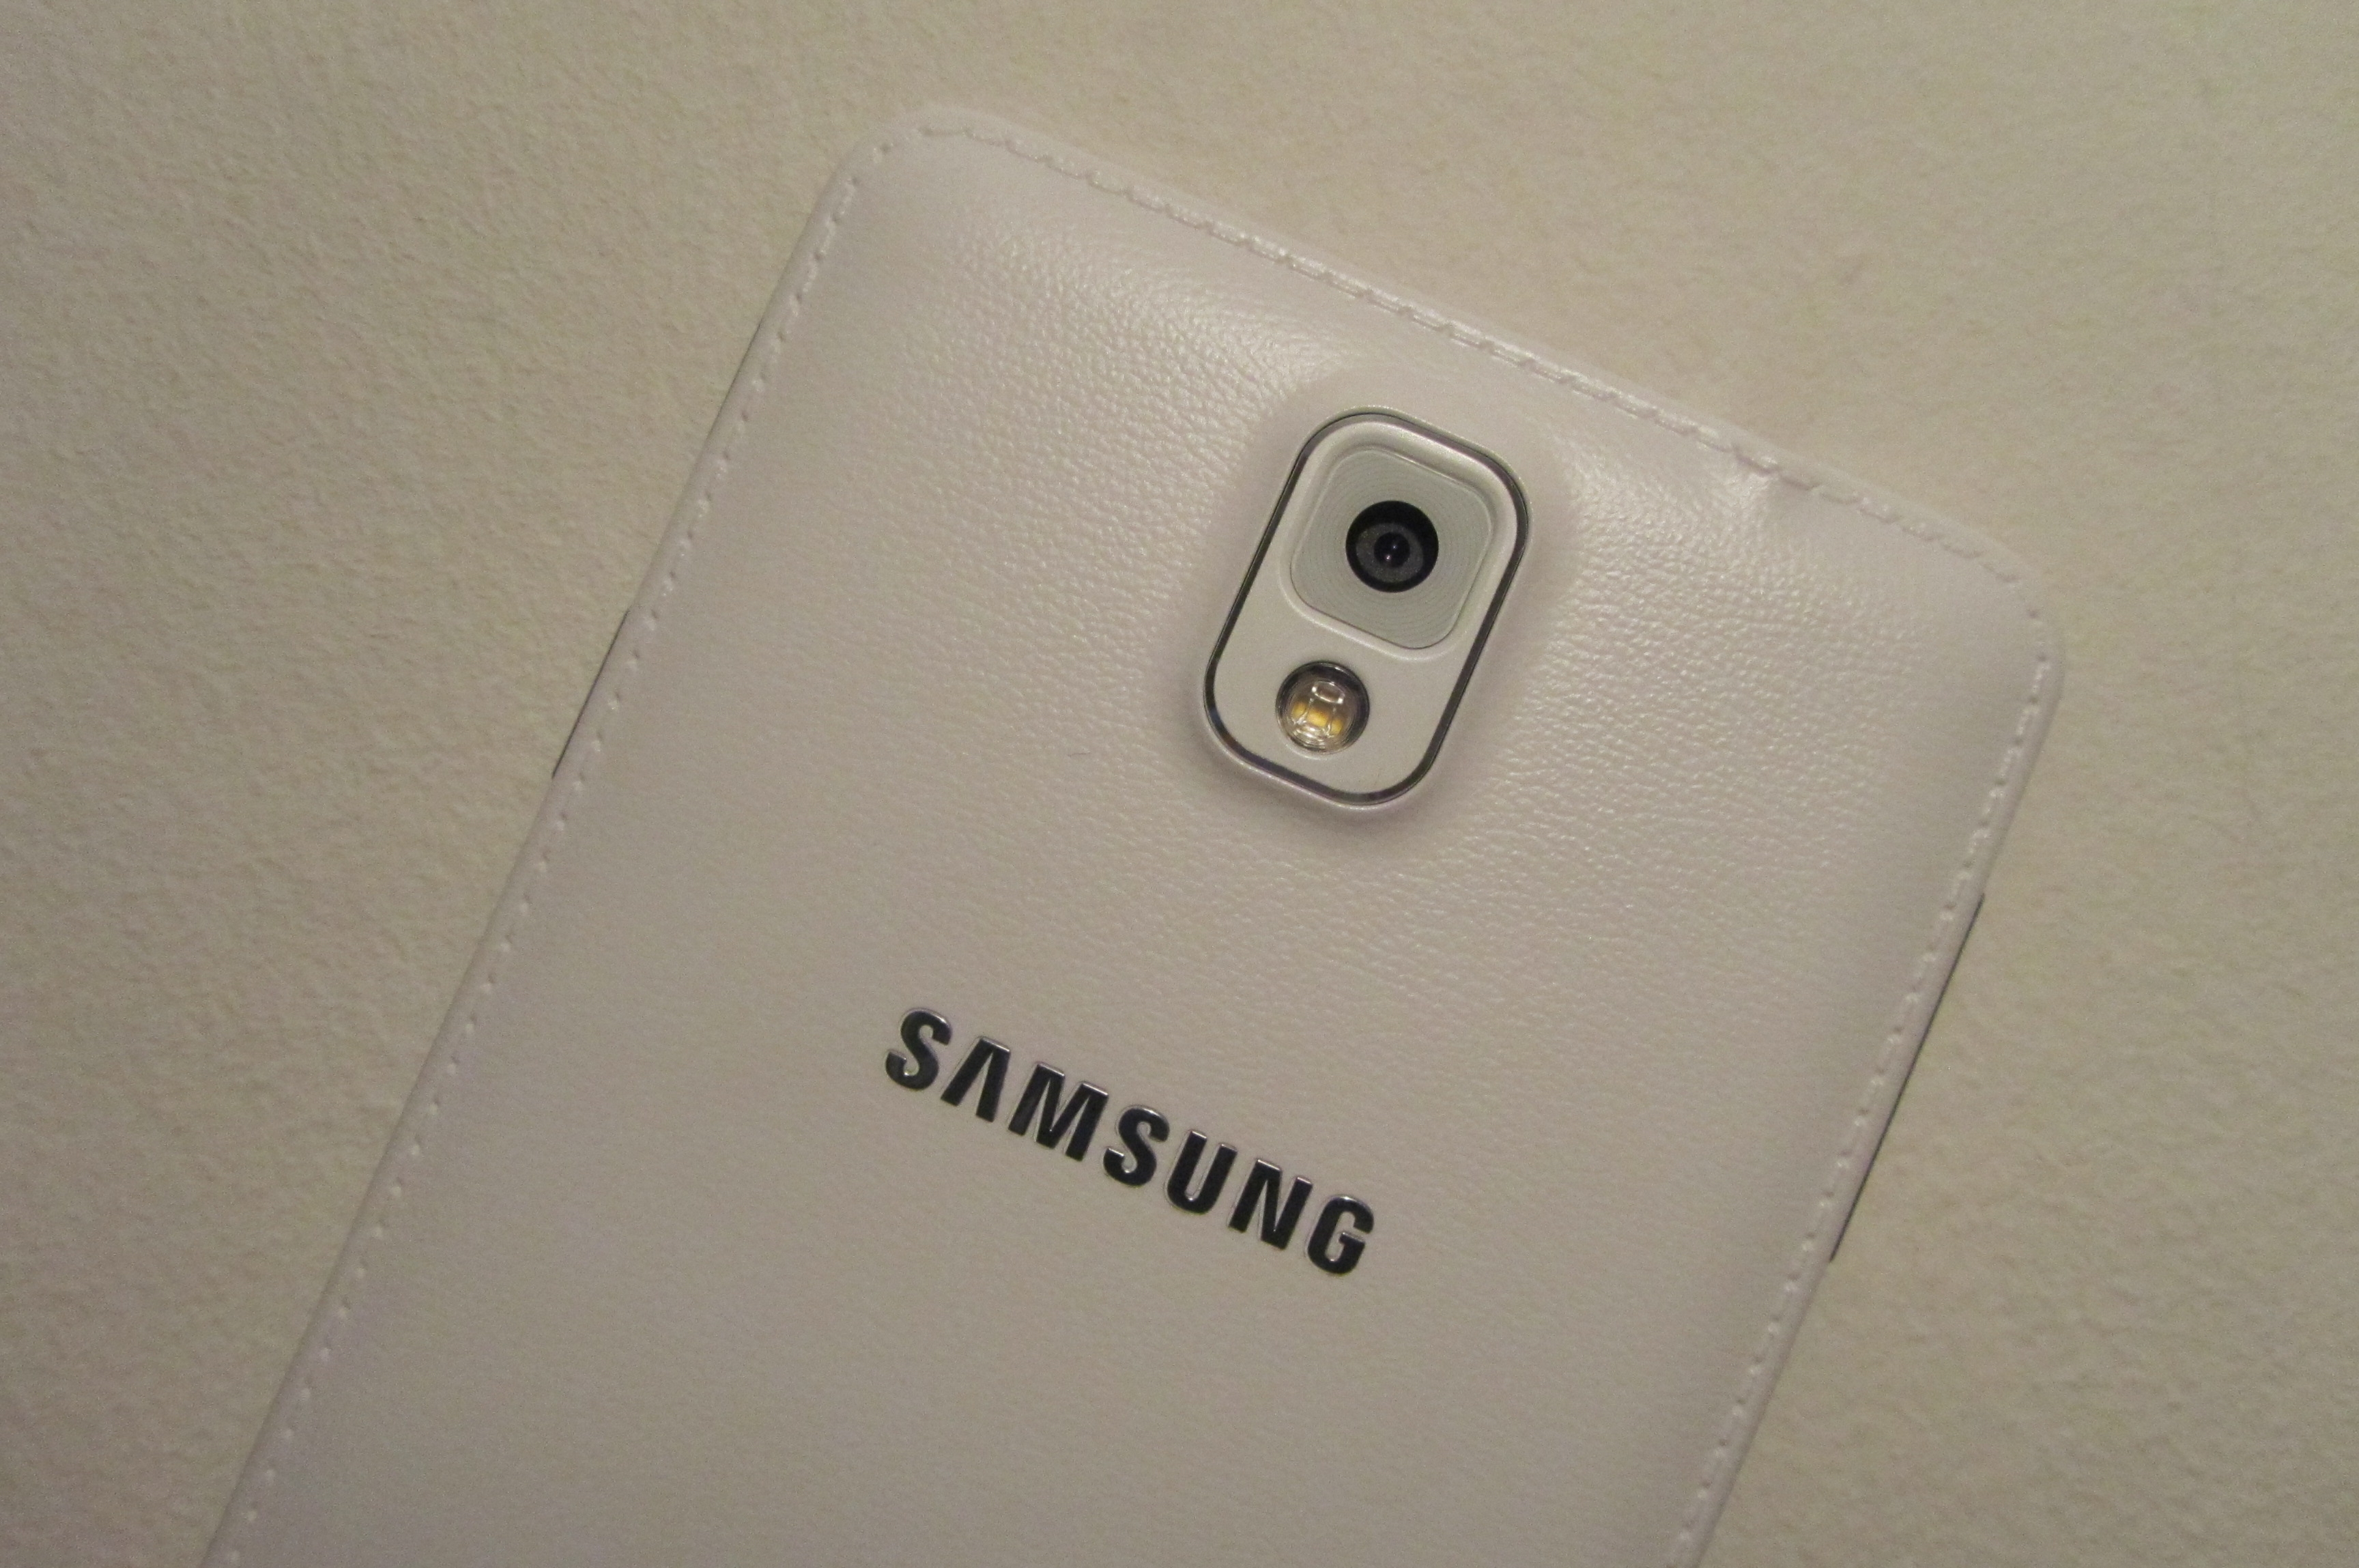 Camera Note3 Samsung Galaxy Note 3 review: One of the best Android handsets money can buy, if you can hold it